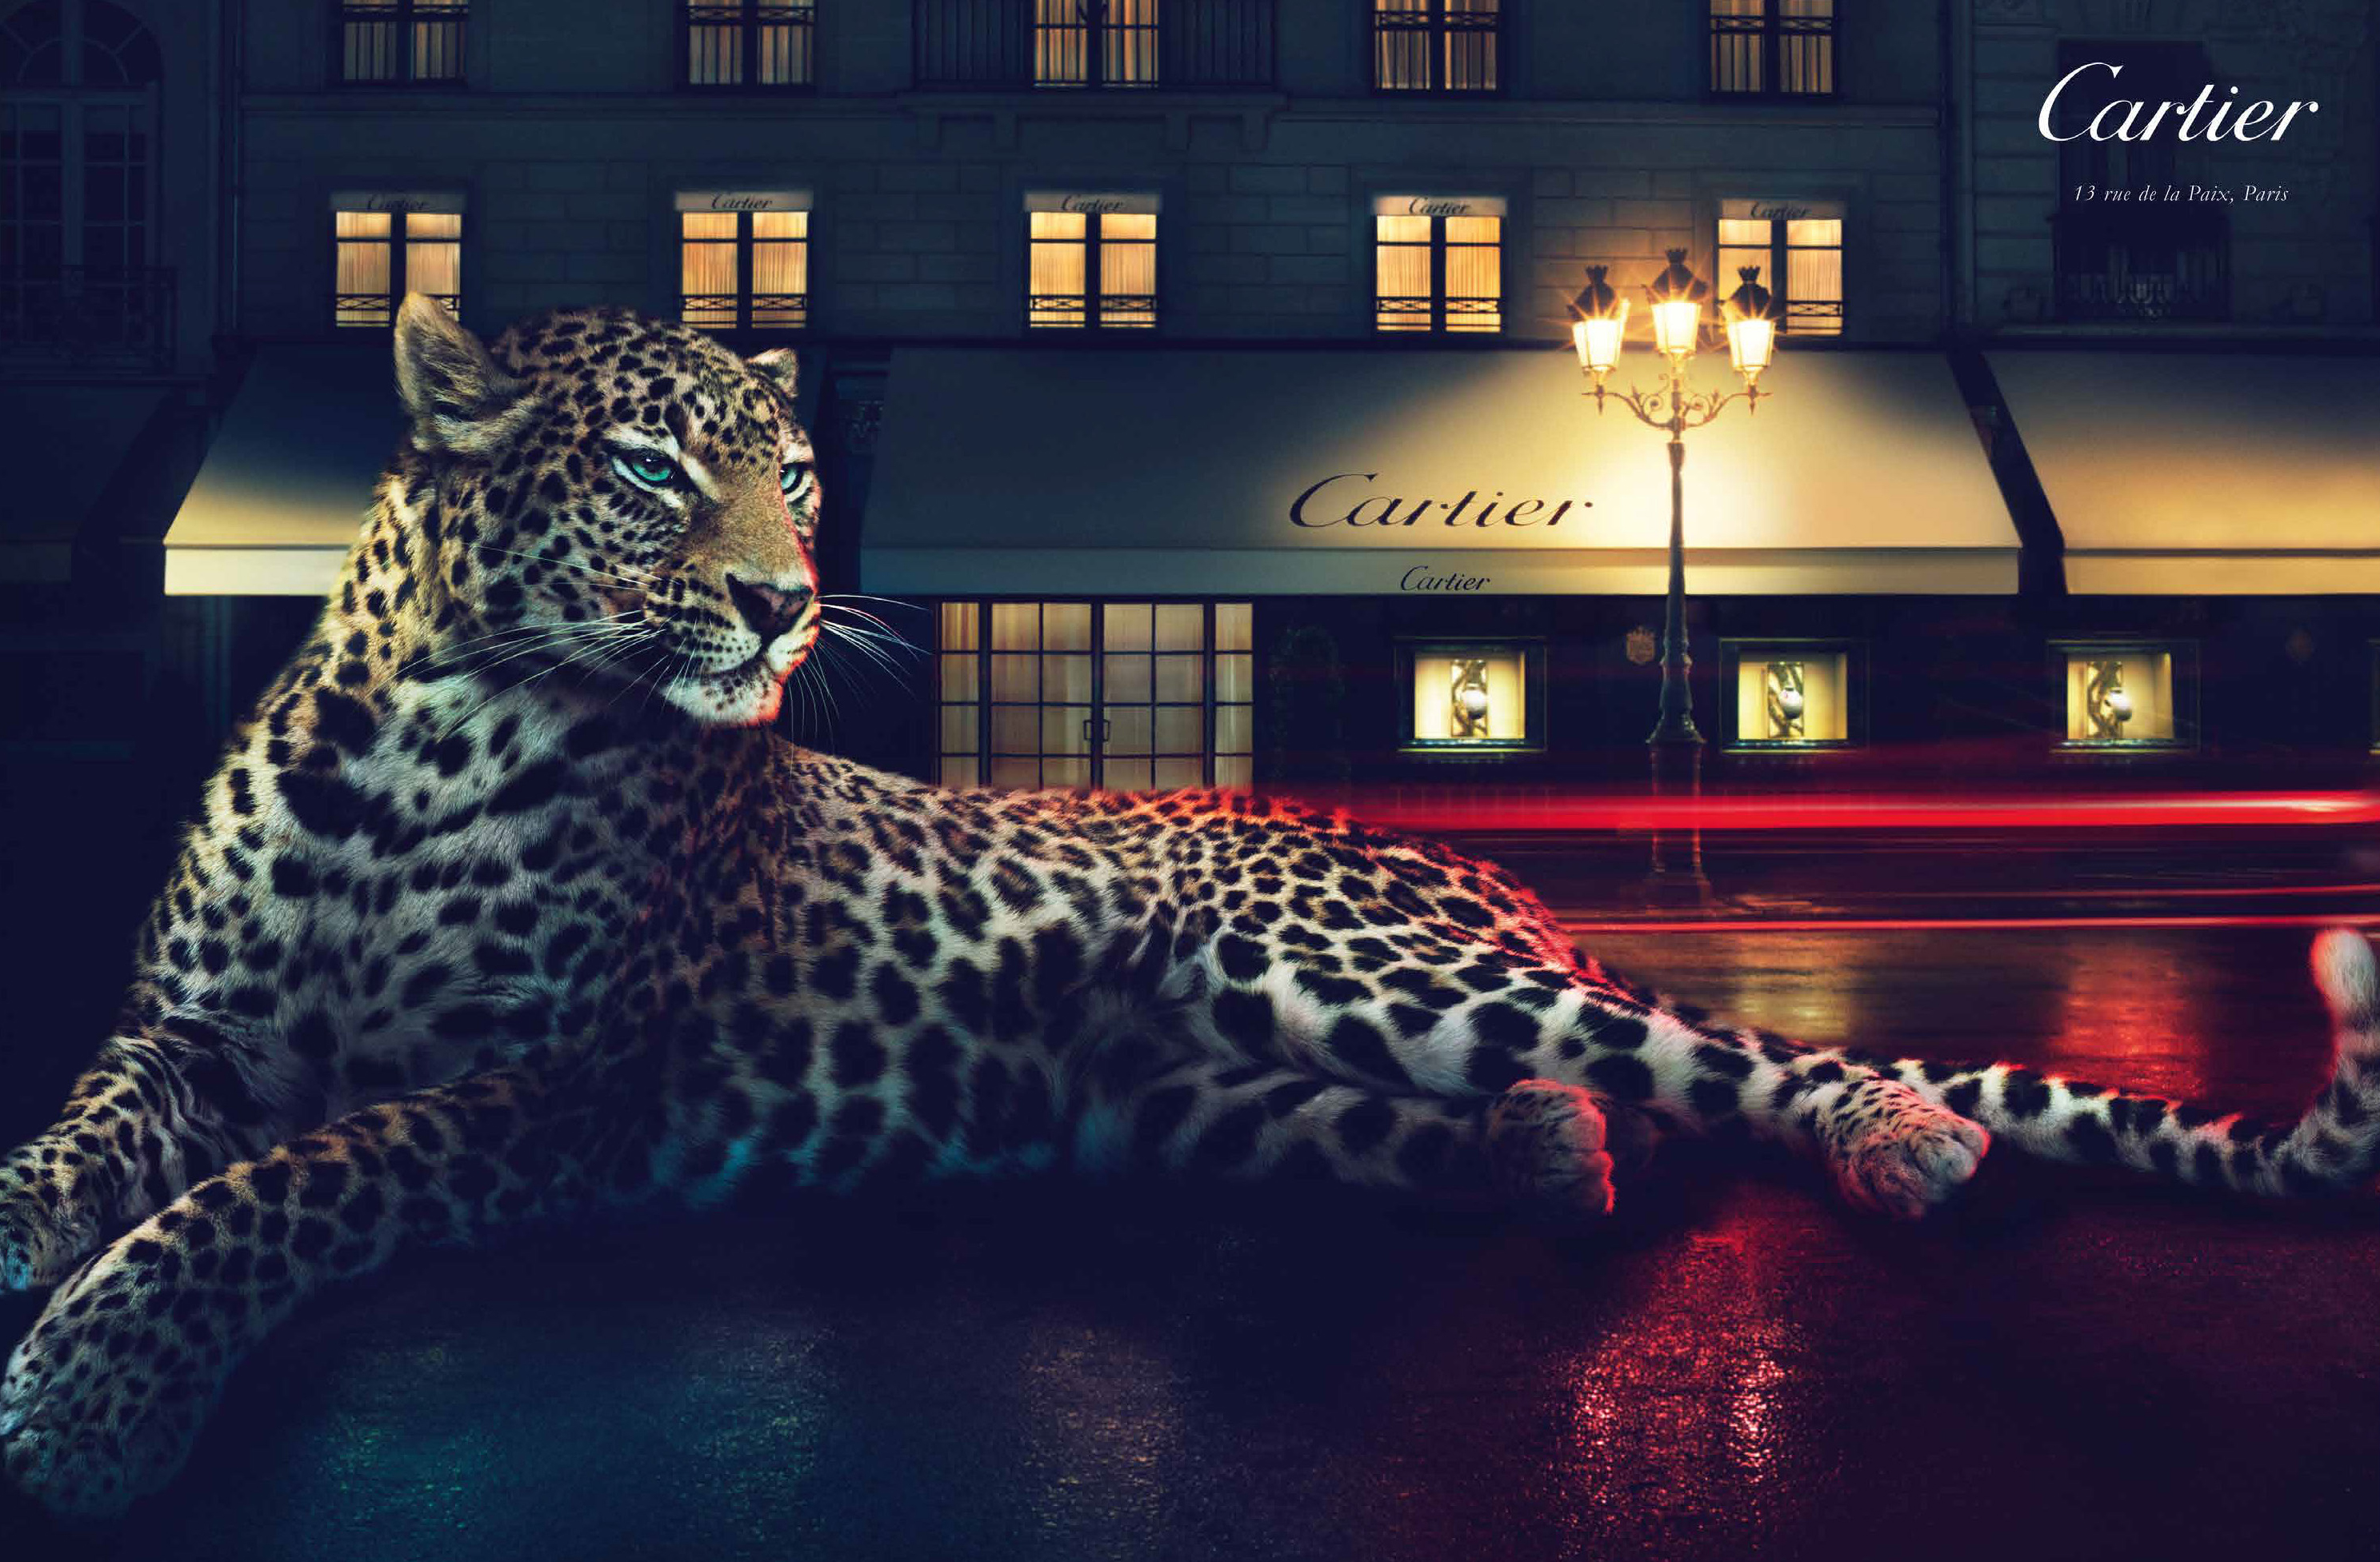 Cartier/photos Mert&Marcus